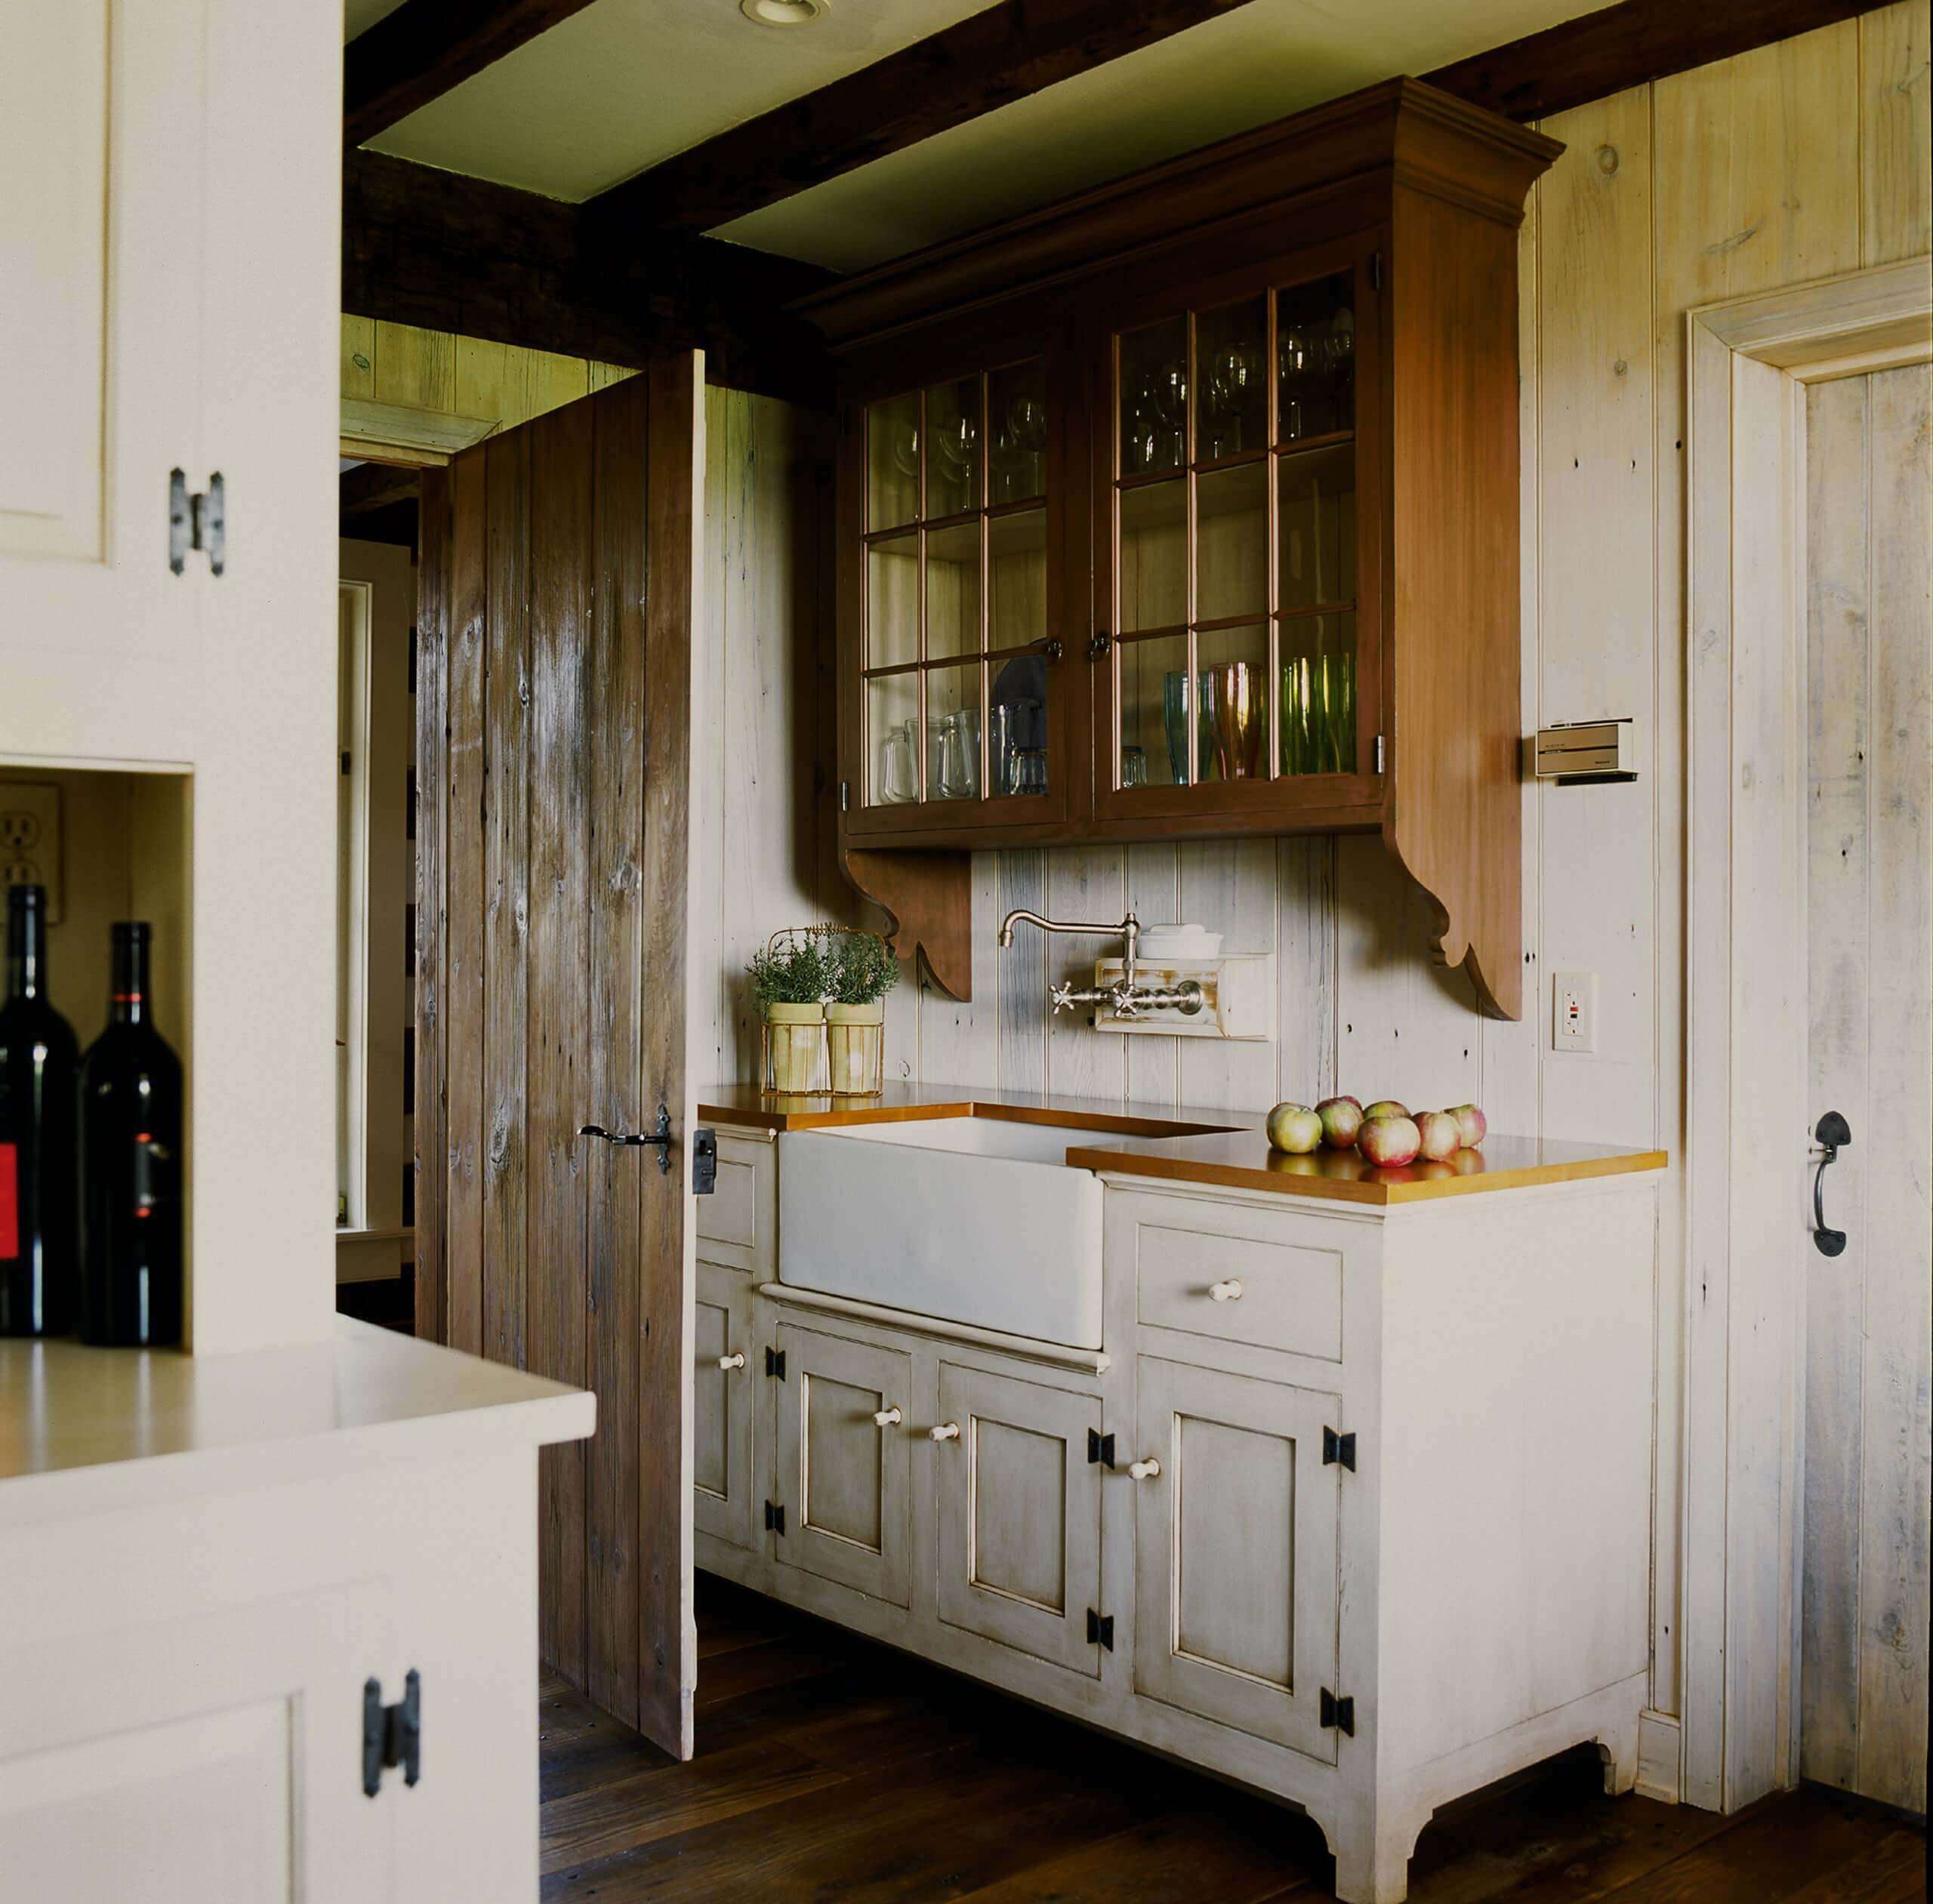 Kitchen In A Cabinet: 23 Best Ideas Of Rustic Kitchen Cabinet You'll Want To Copy